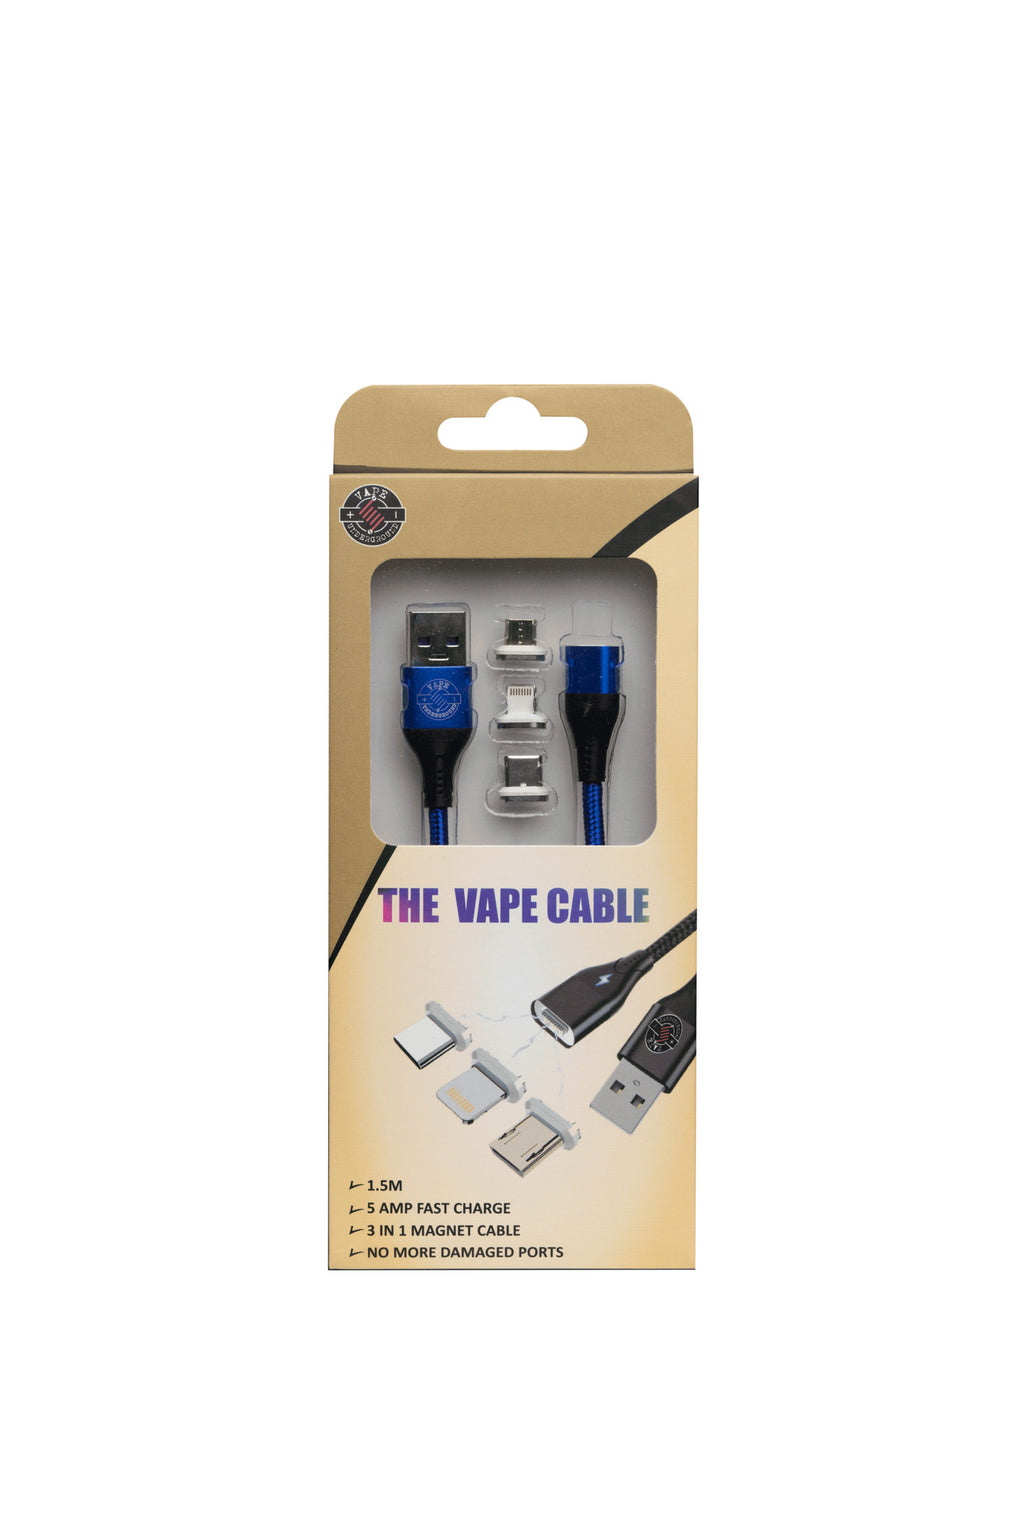 The Vape Cable